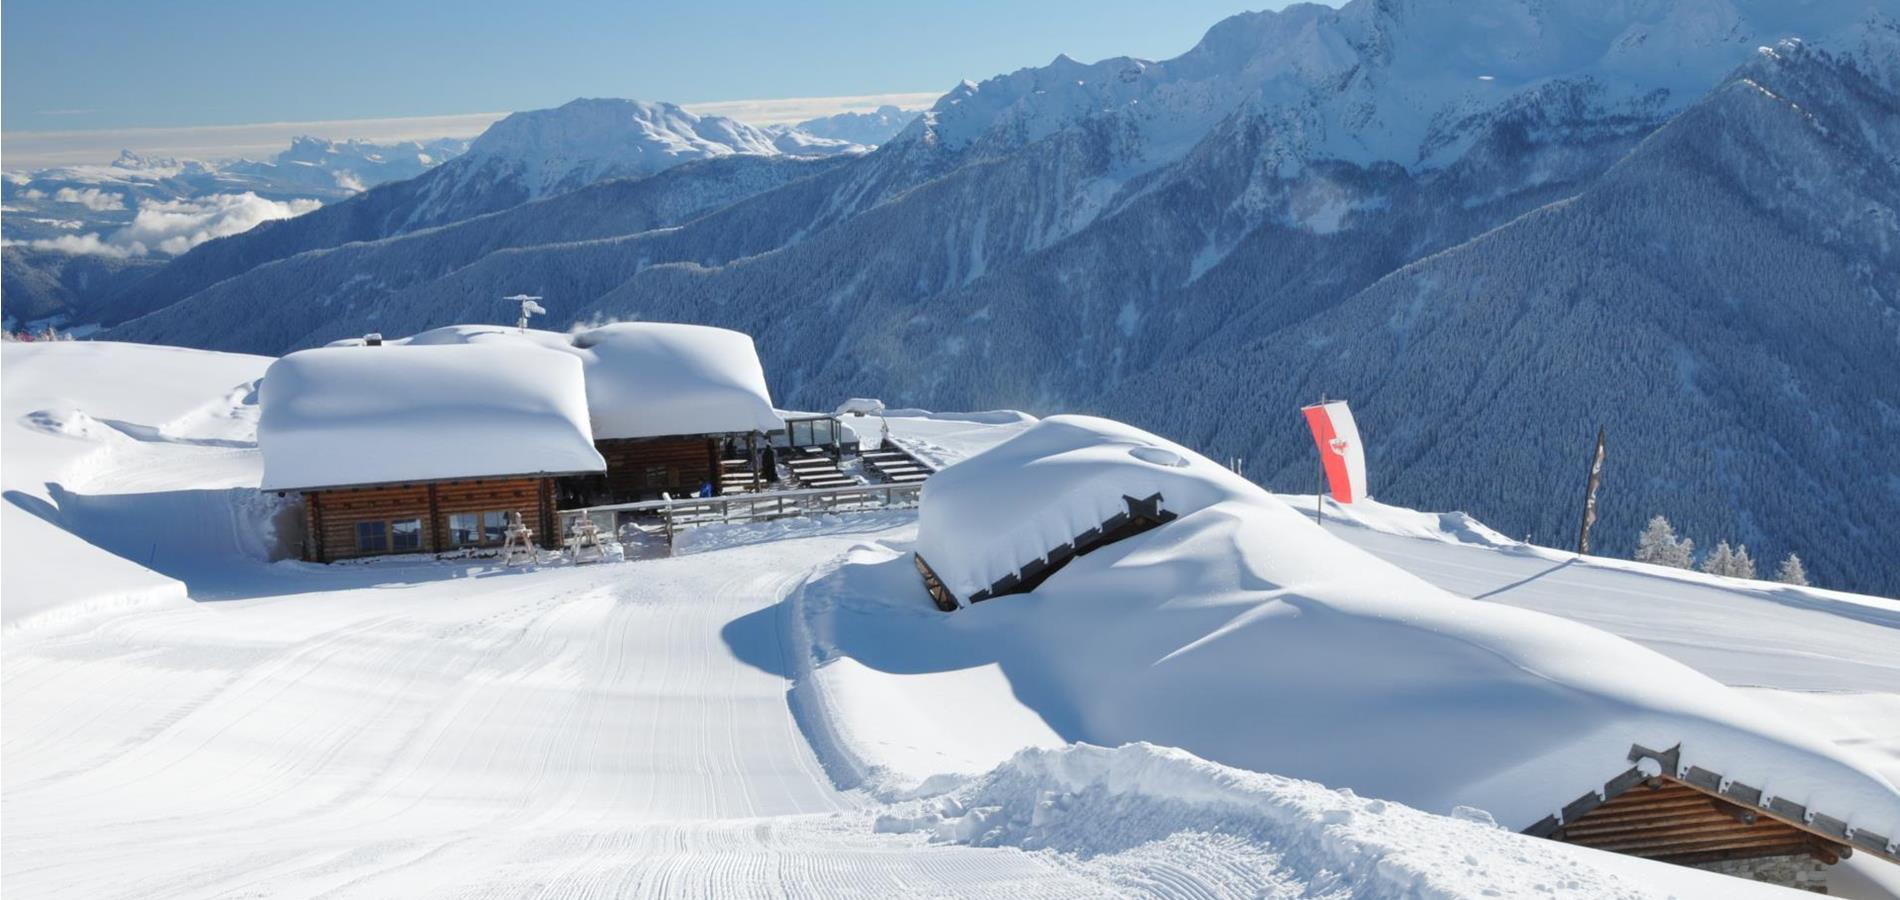 Alpine Huts & Dining at the Schwemmalm in Winter